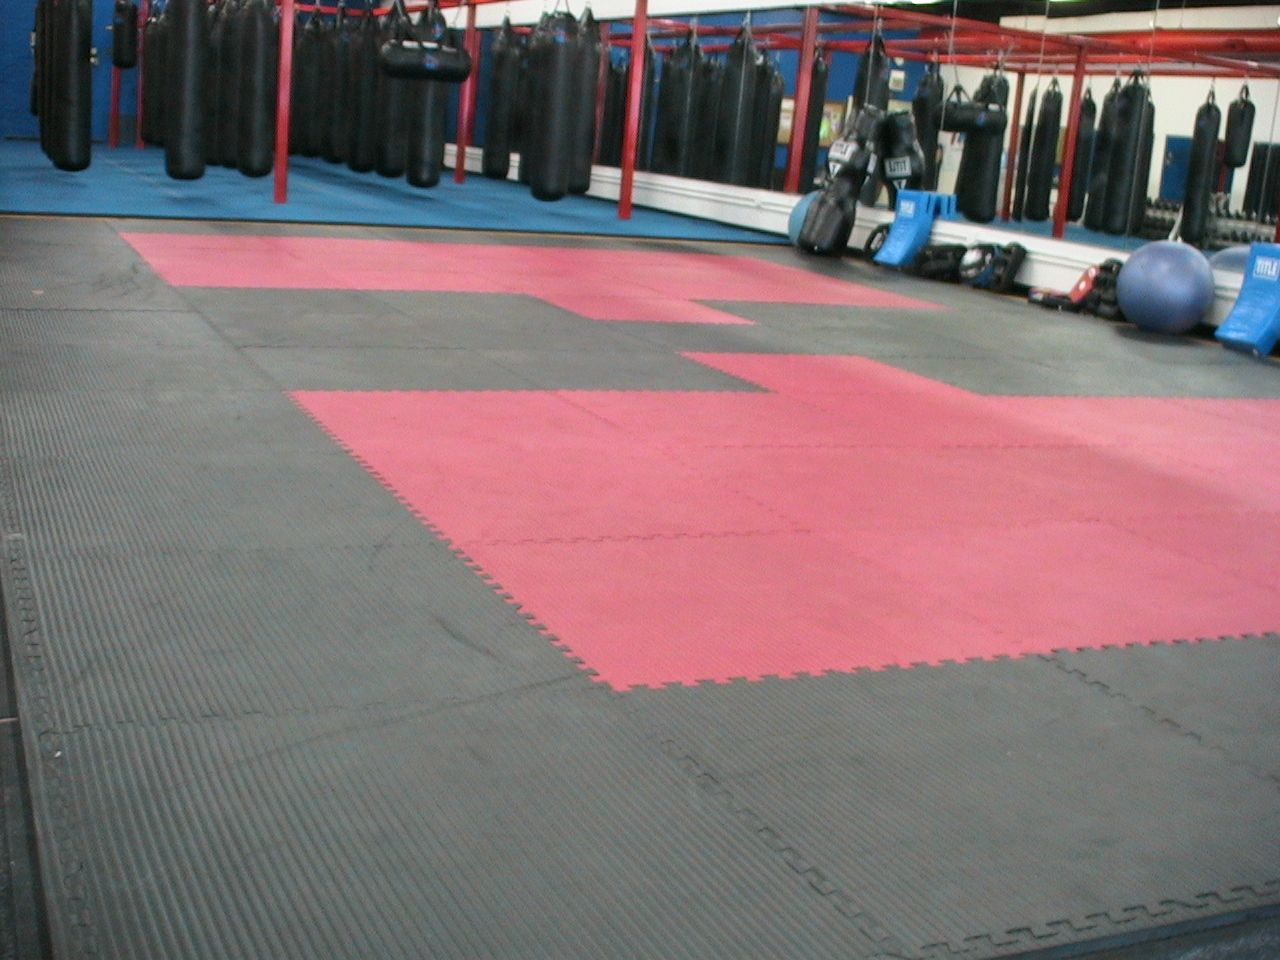 Mat Space..Lots and lots of mat space Basketball court